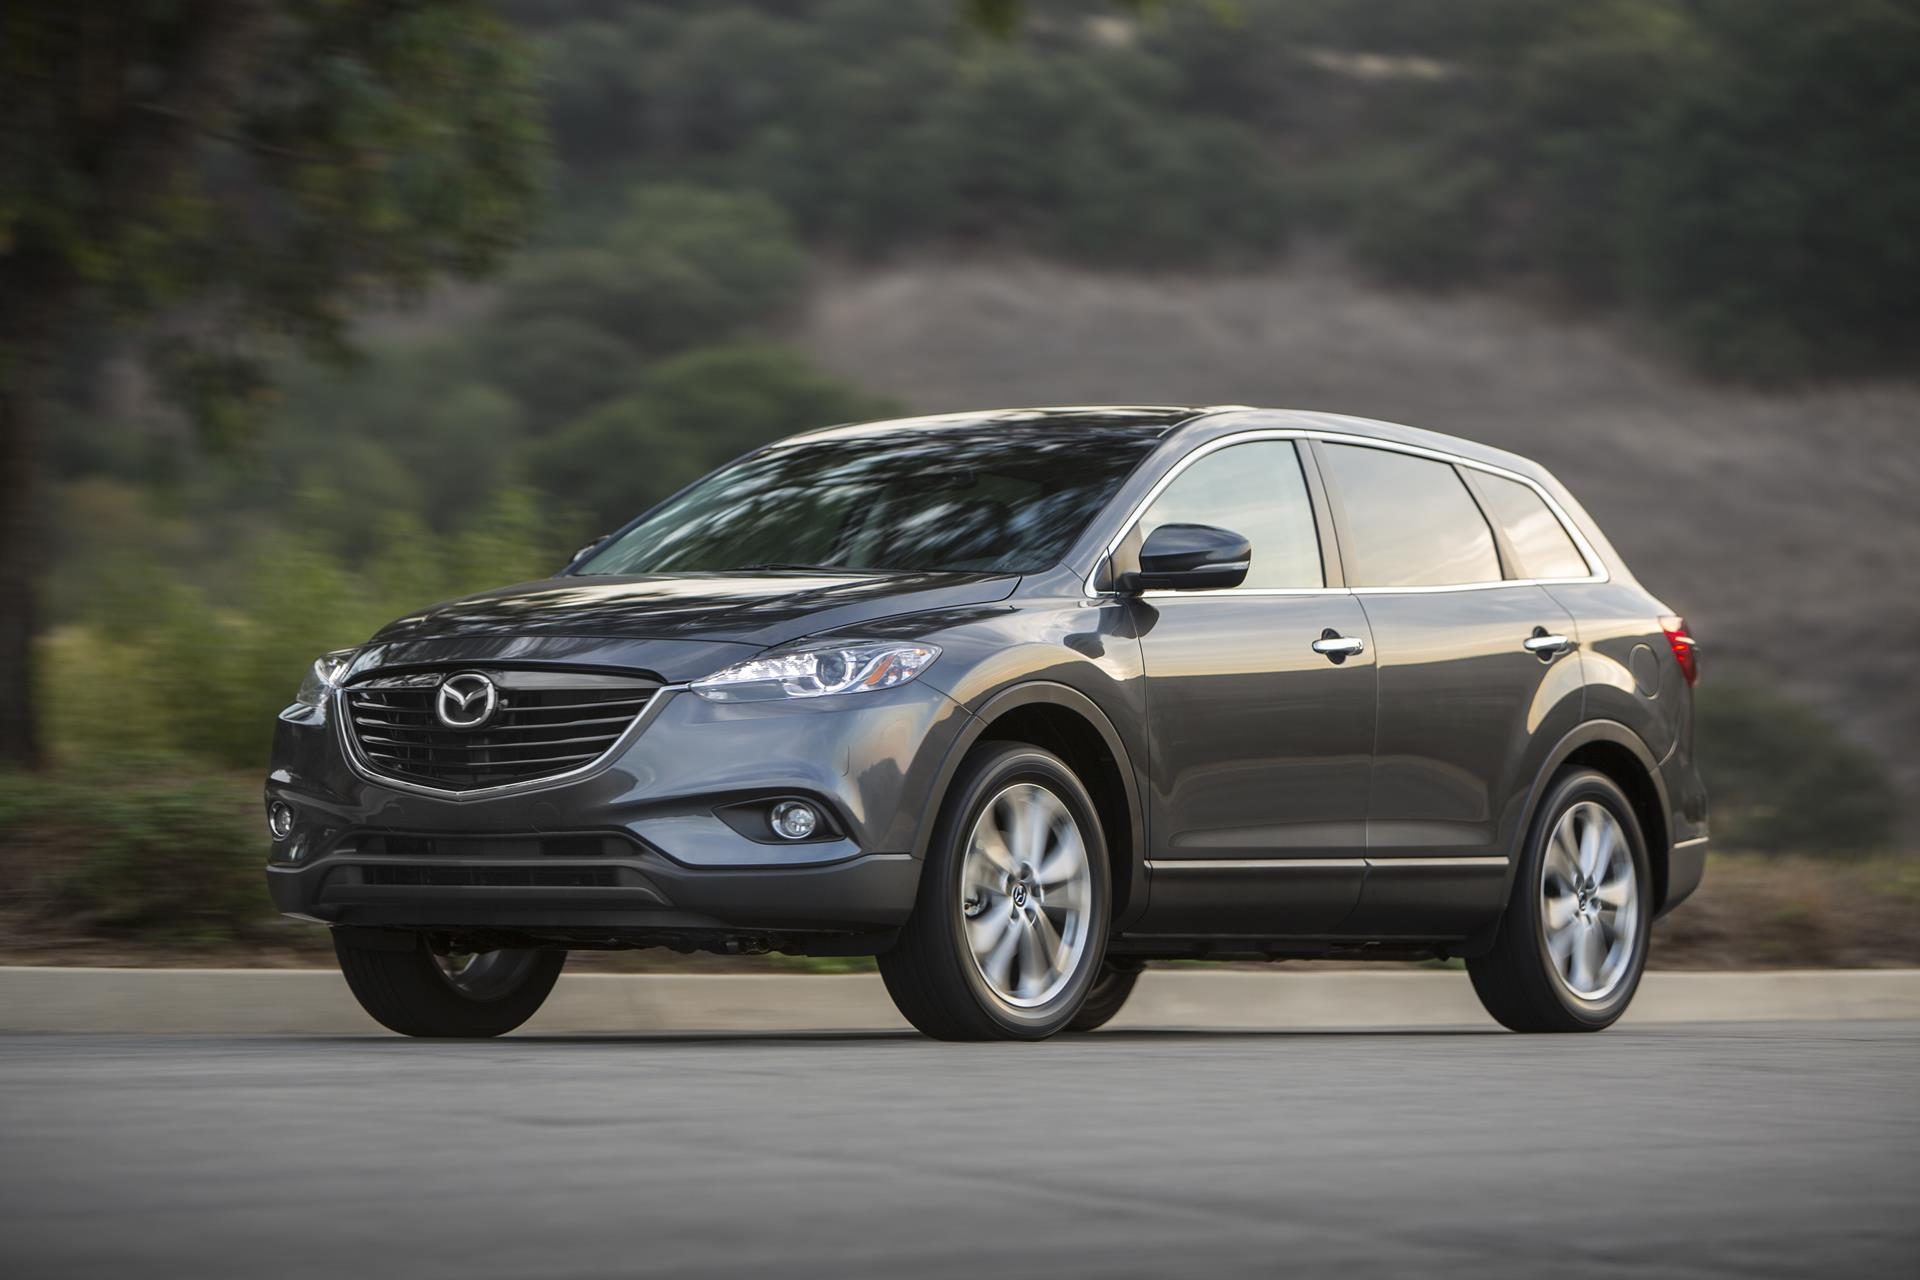 2015 Mazda Cx 9 News And Information Conceptcarz Com